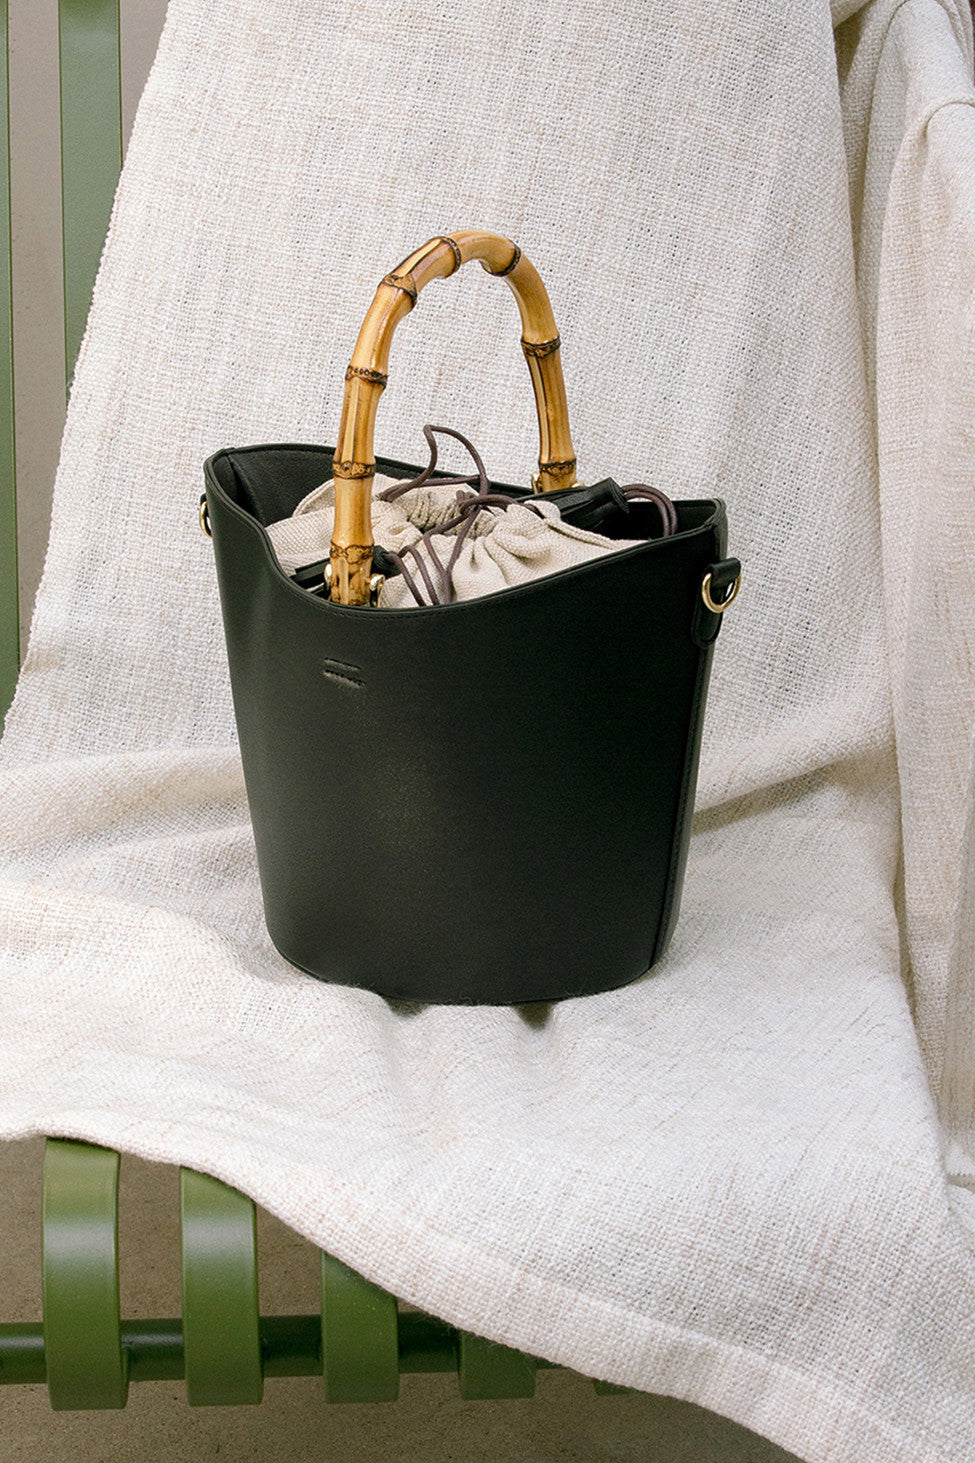 Bonet bag in Black. Wooden bamboo carrying top handles. Cylindrical design. Brown drawstring fabric insert with white tassel.